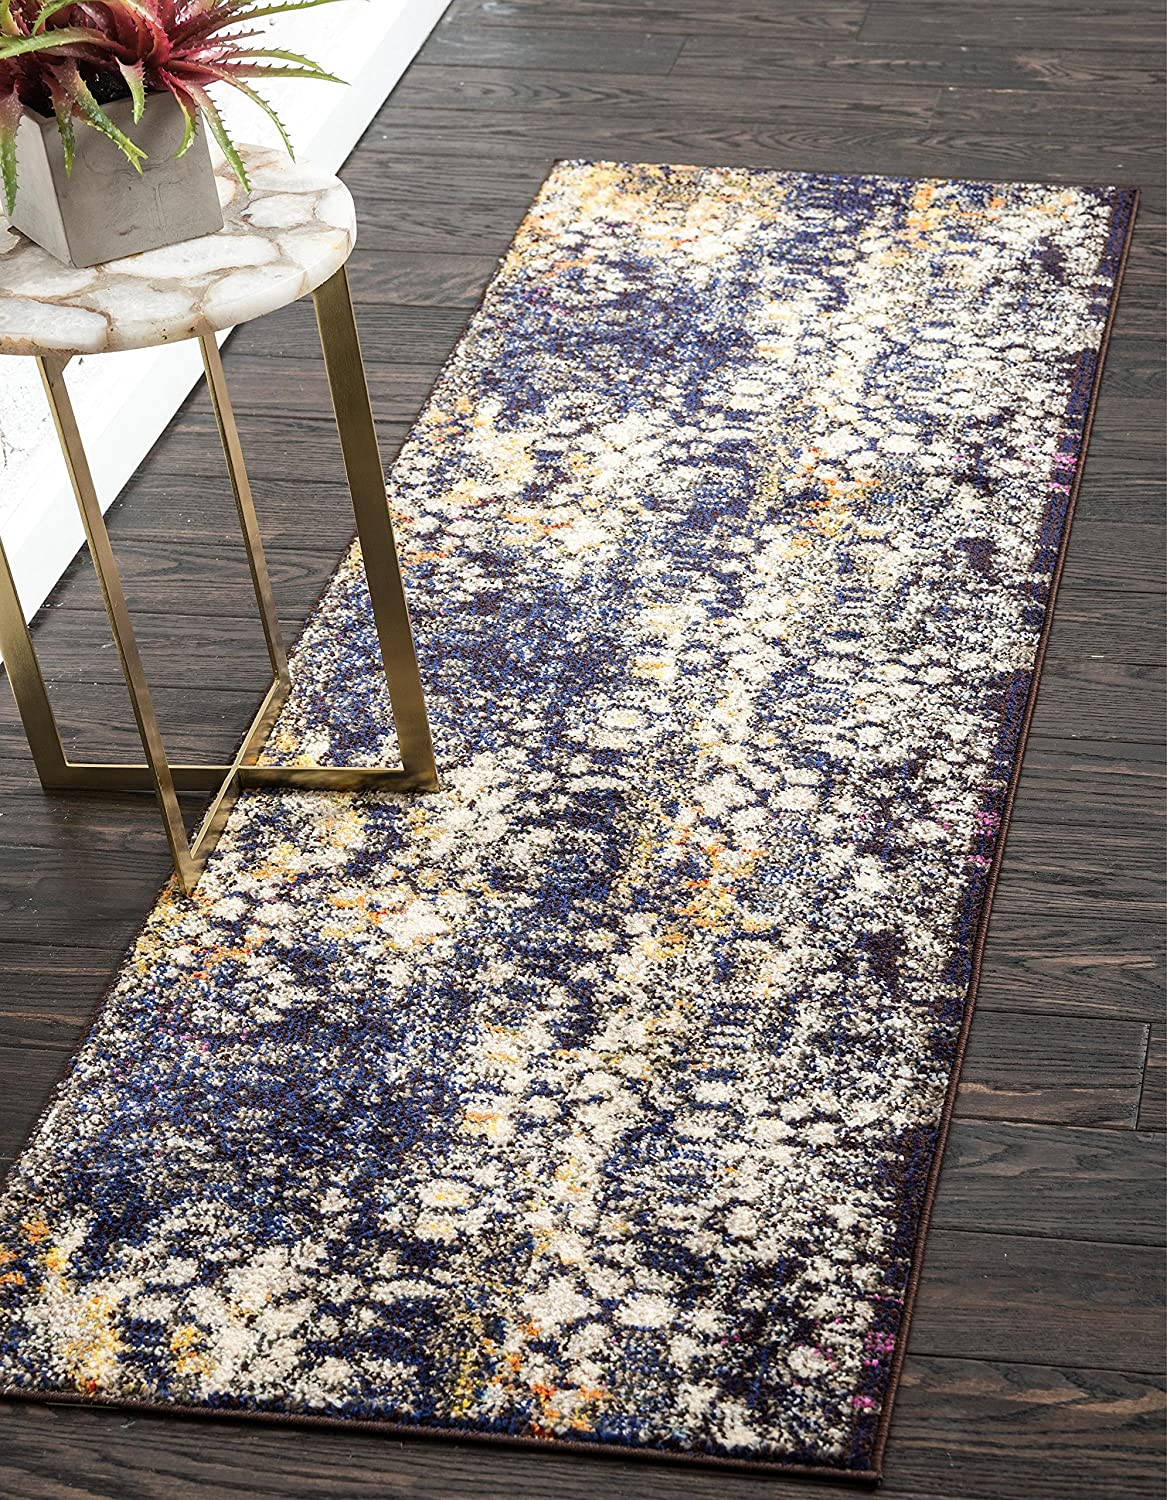 Unique Loom Vita Collection Traditional Over-Dyed Vintage Navy Blue Runner Rug (2' 0 x 6' 7)